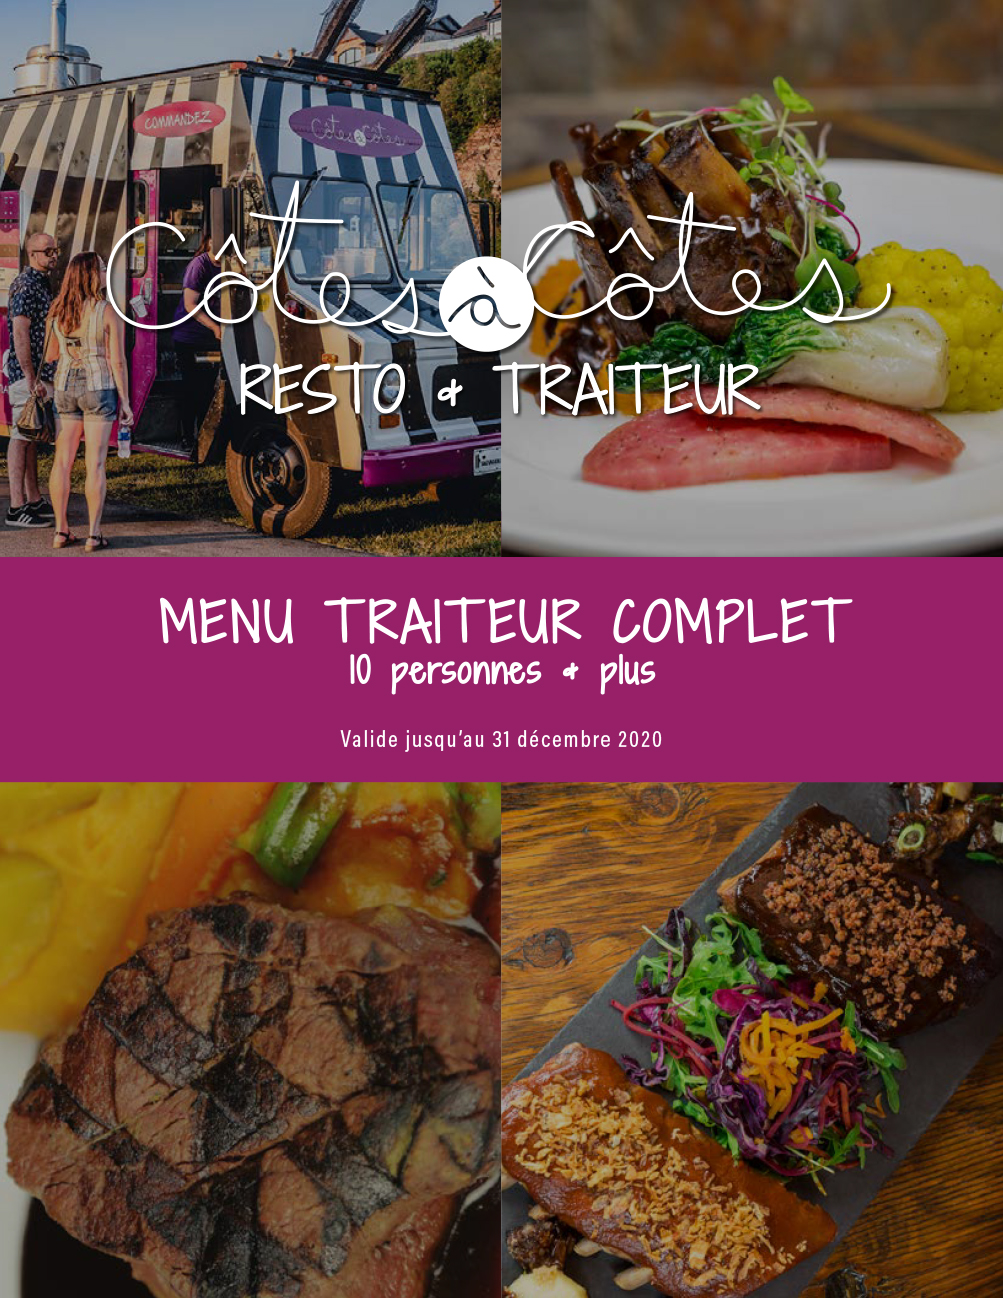 2.0 menu traiteur complet 1